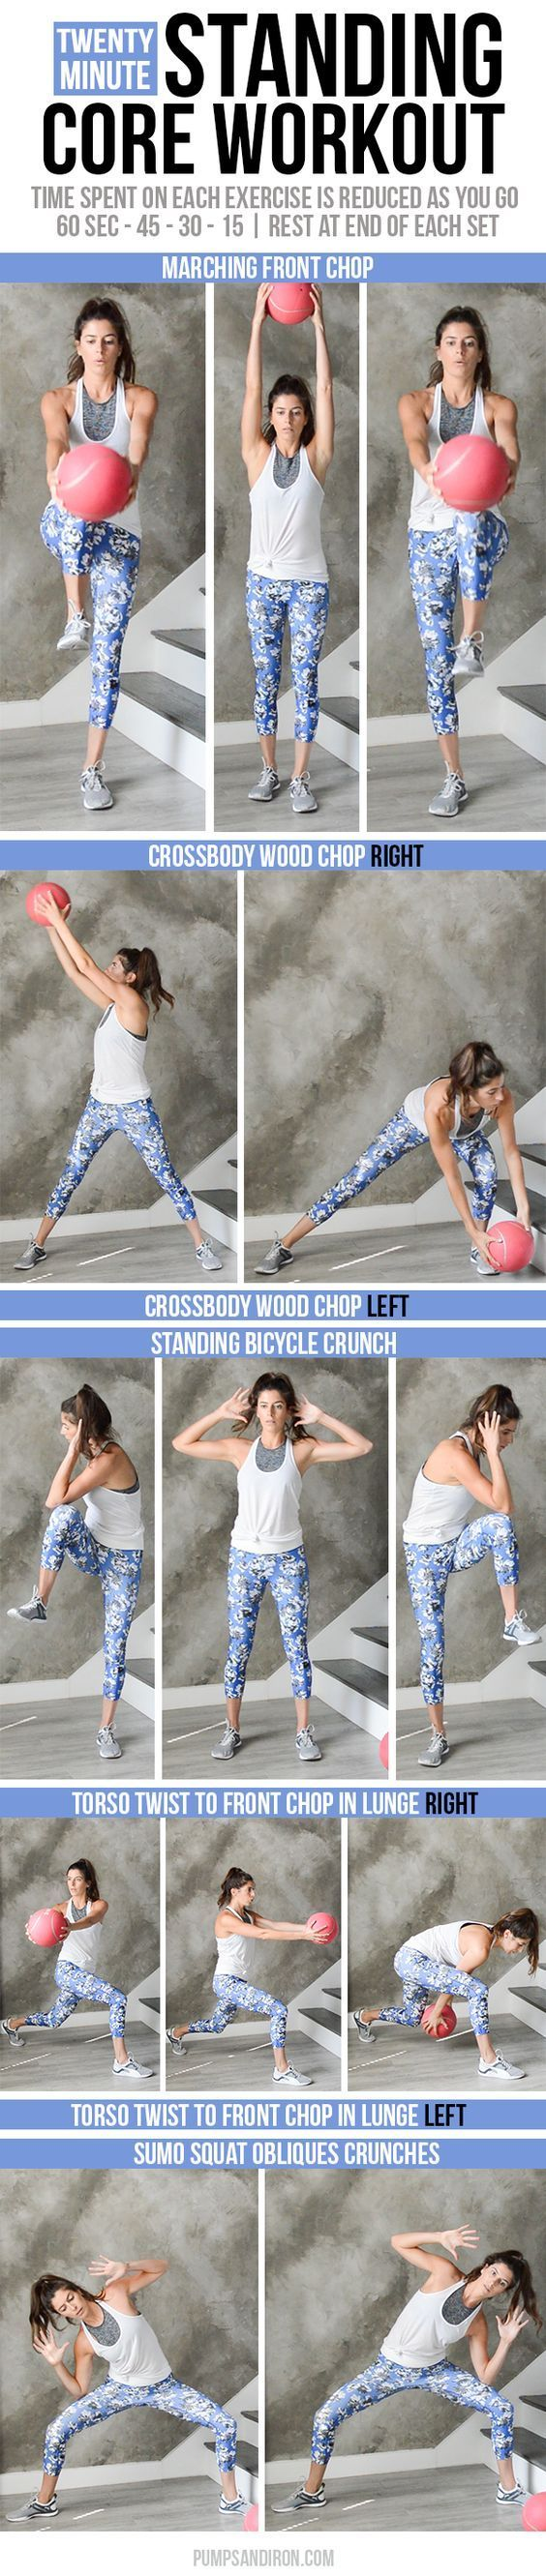 Standing Core Workout this 20 minute workout will challenge